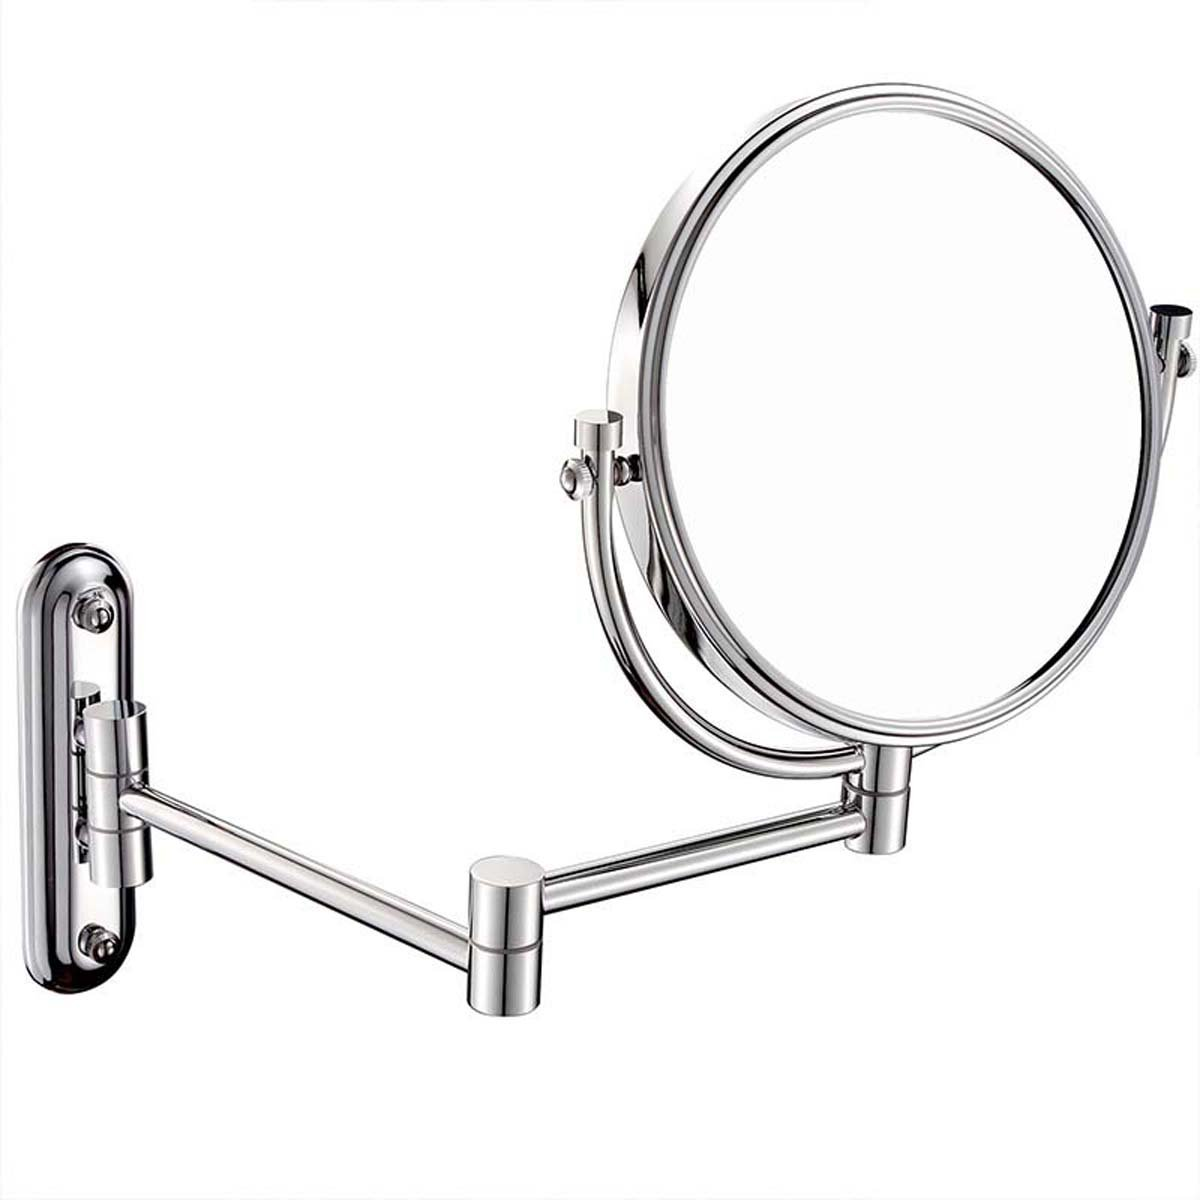 J&A Bathroom Makeup Mirror,Wall-Mounted Folding Creative European Style Makeup Mirror,Foldable 360 Degree Free Rotation 3x Magnification Shaving Mirror Personality Stainless Steel Base